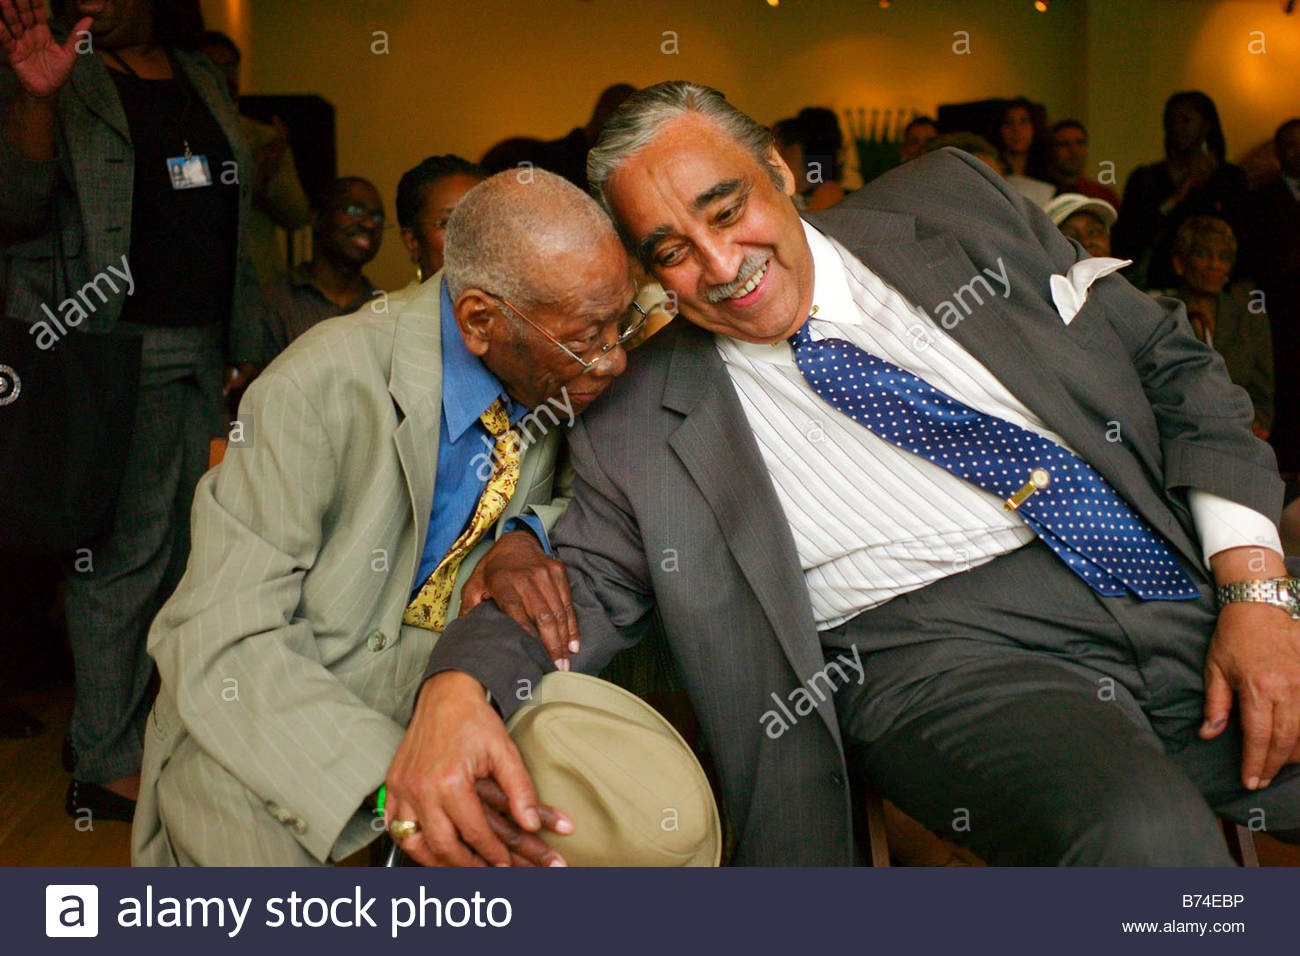 HARLEM May 31 Long time friends attorney Thornton Meecham 90 and House Ways and Means Chairman Charles B Rangel - Stock Image